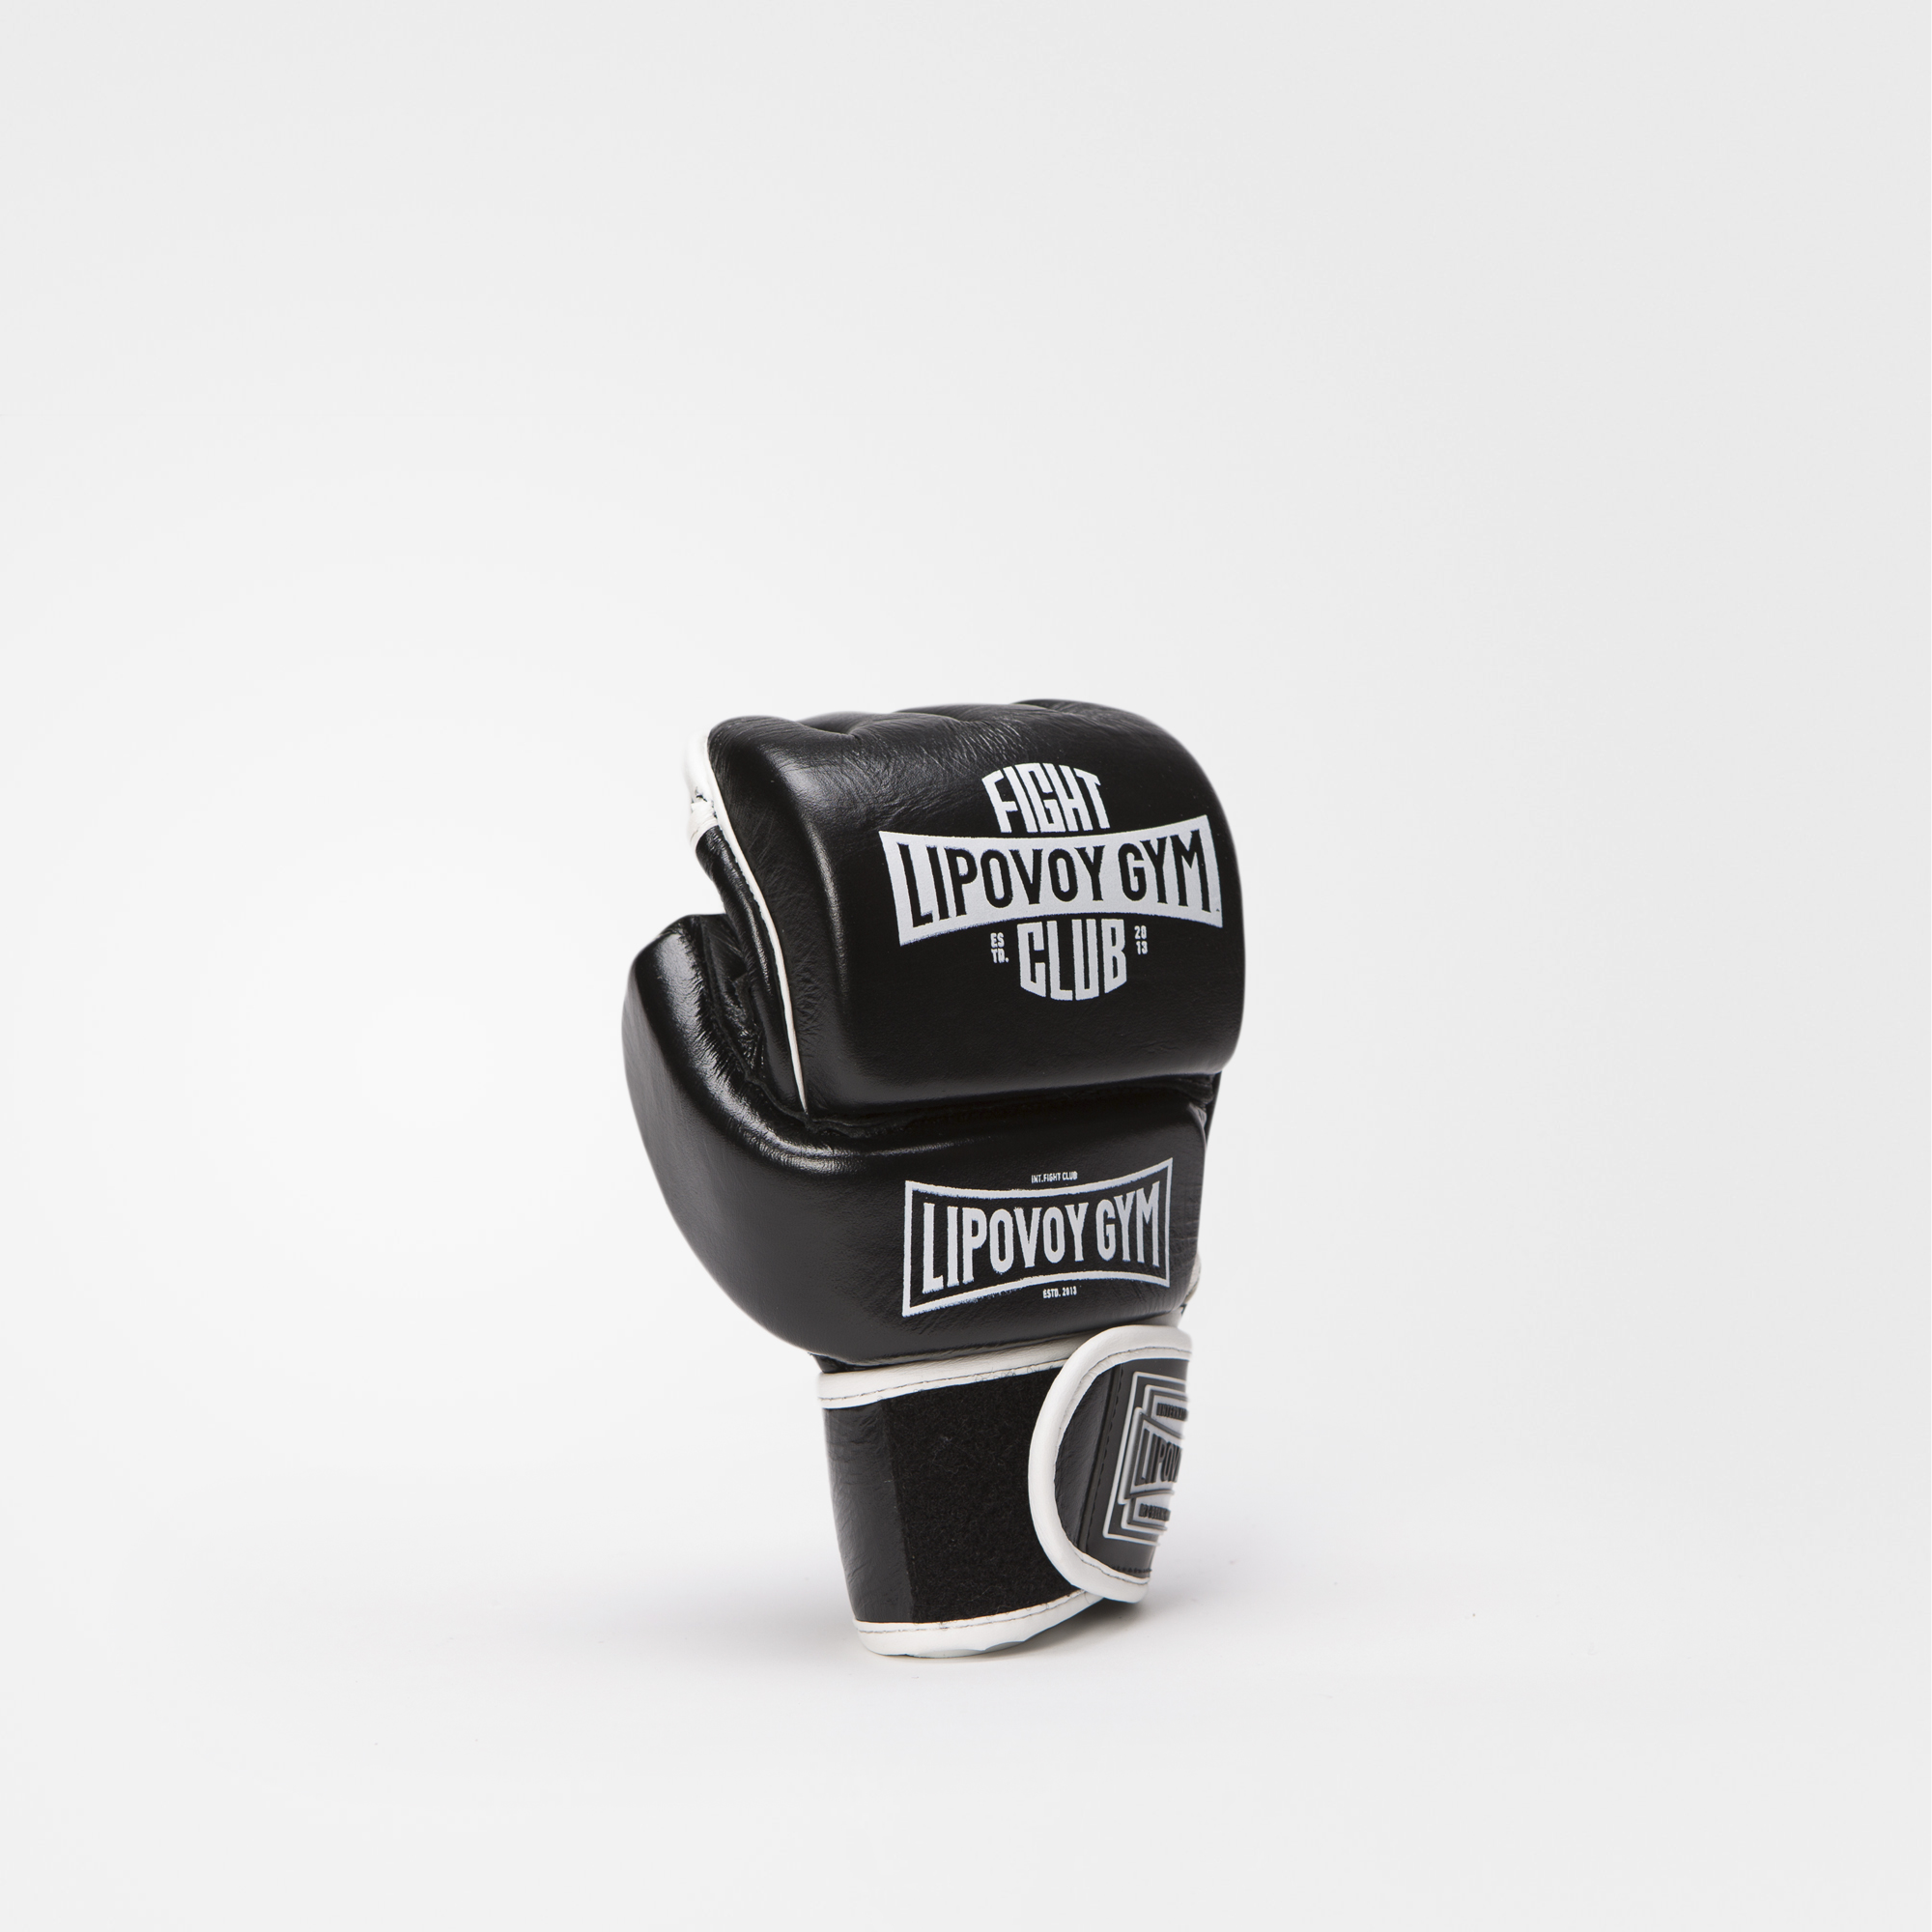 MMA gloves protect